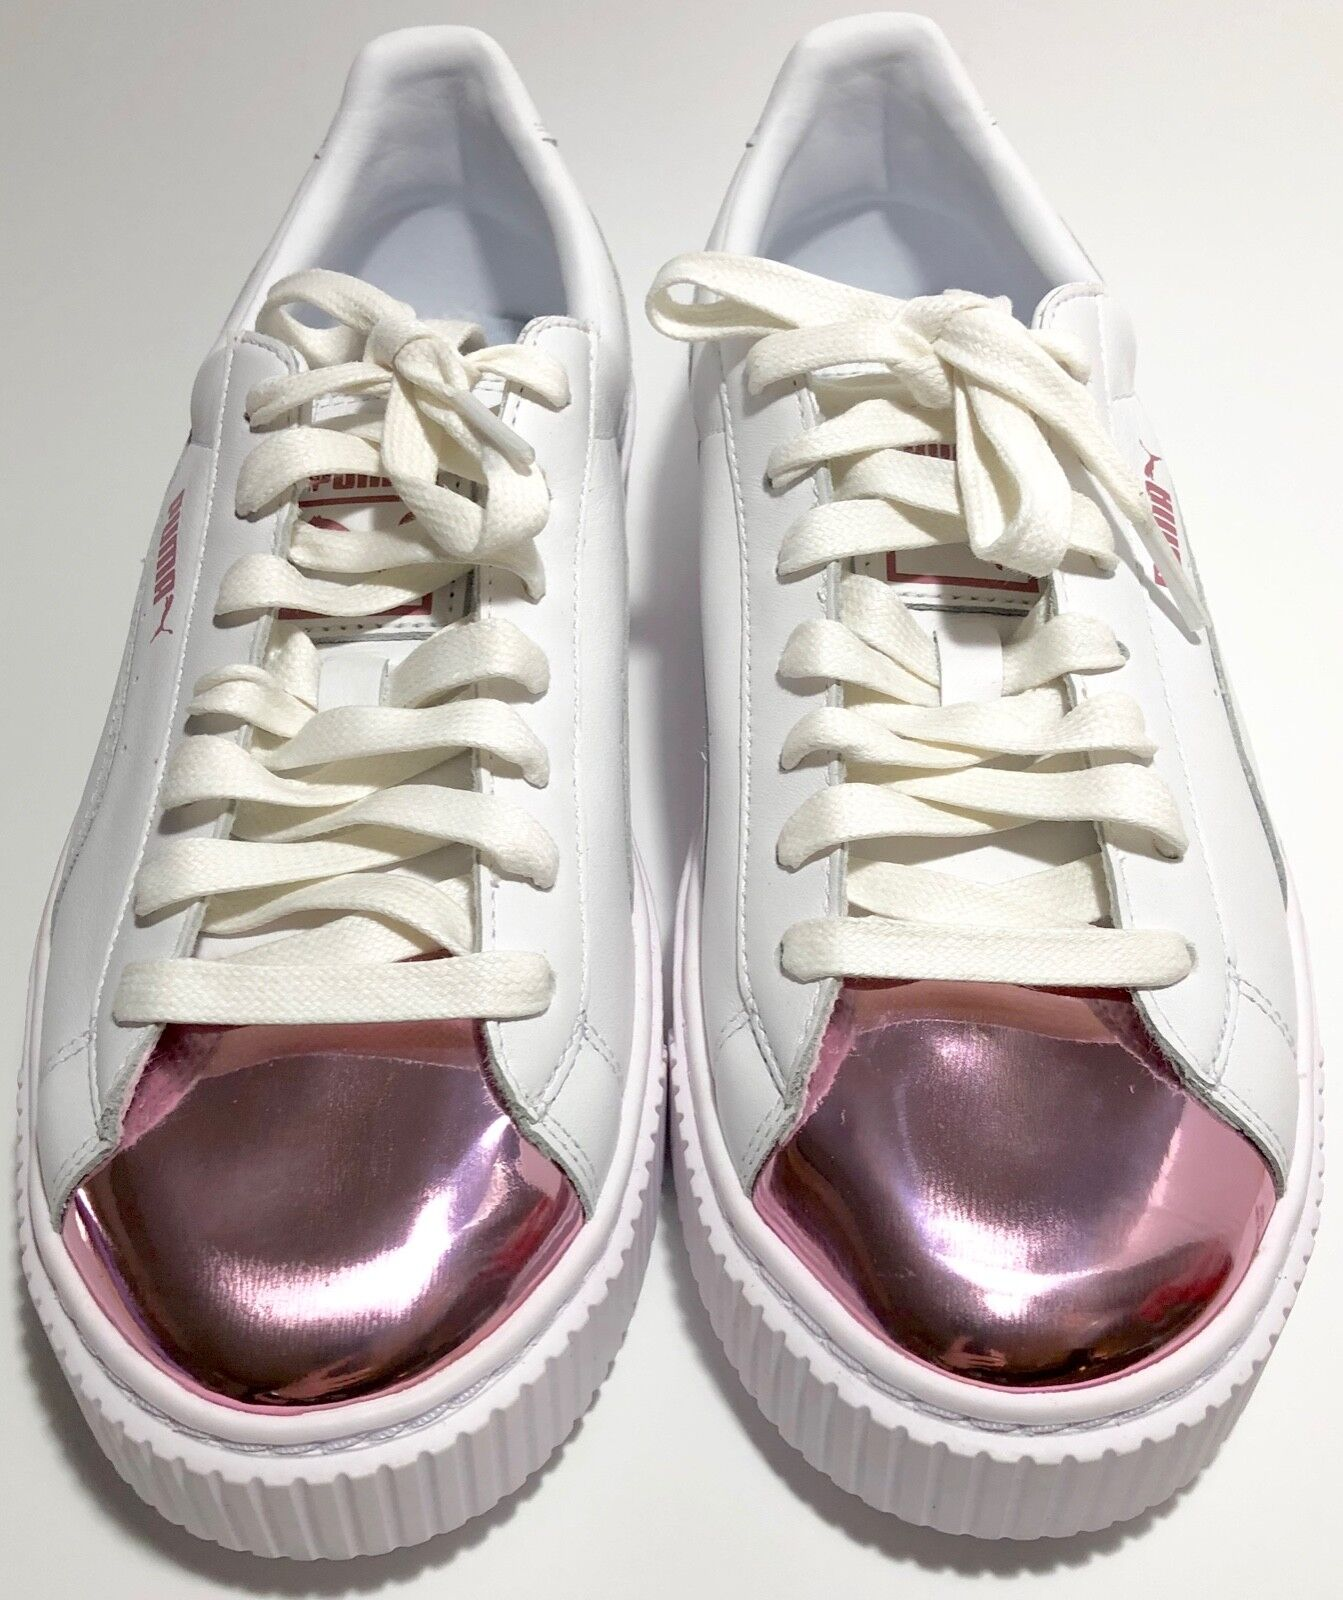 New Women's Puma Basket Platform Metallic shoes 36616904 White-purplec-Snow - 9 B